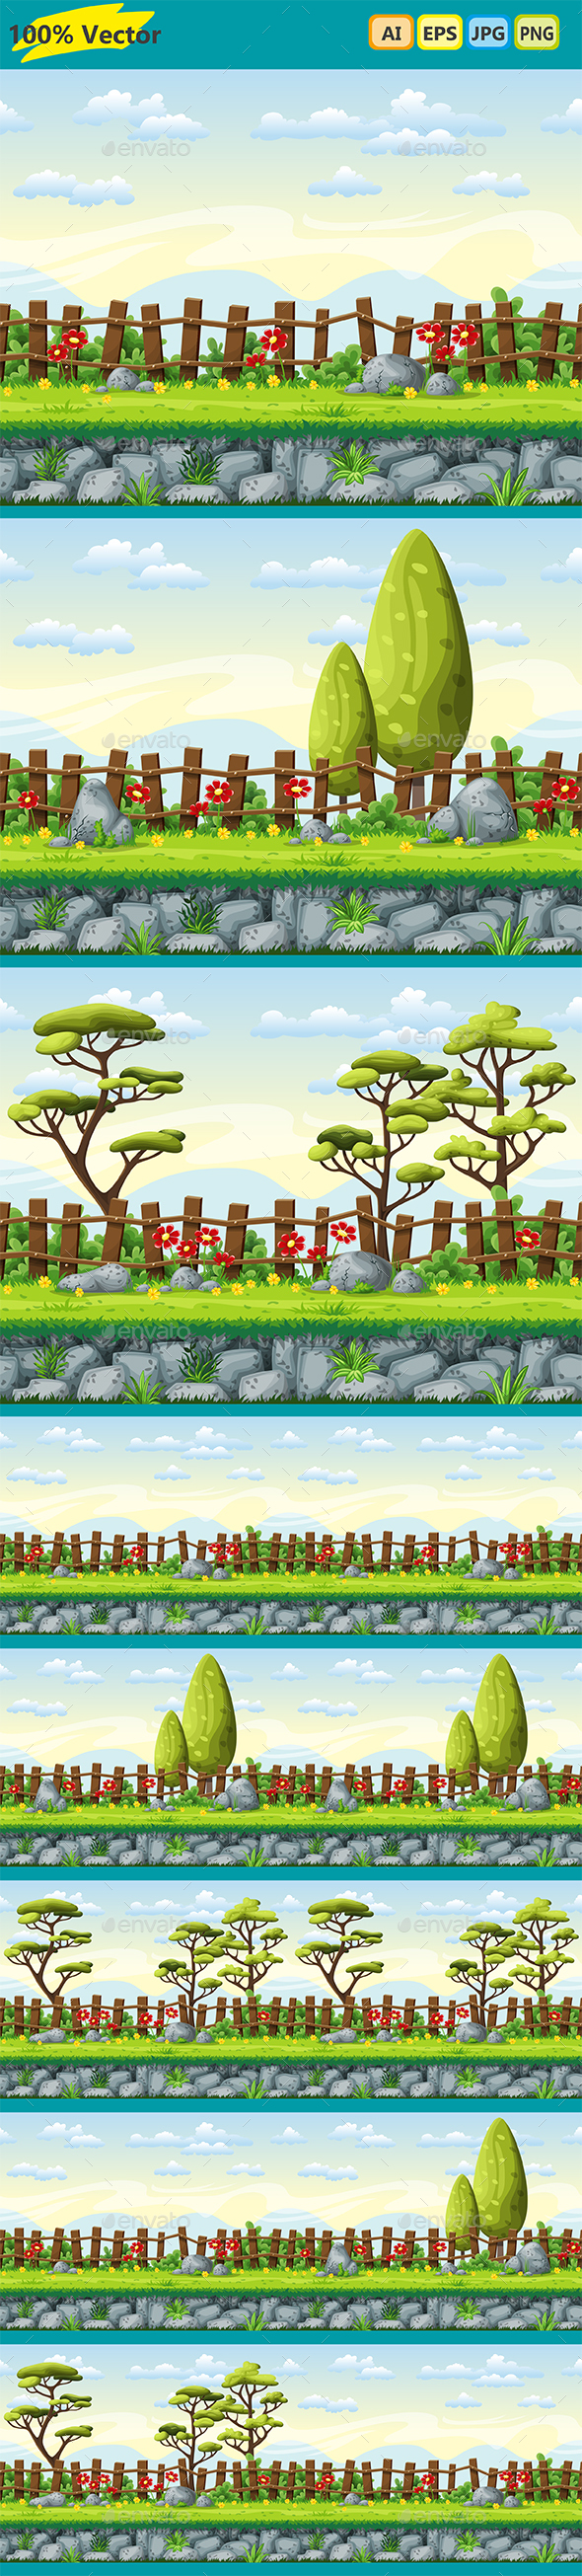 3 Cartoon Game Background Summer Landscapes - Backgrounds Game Assets